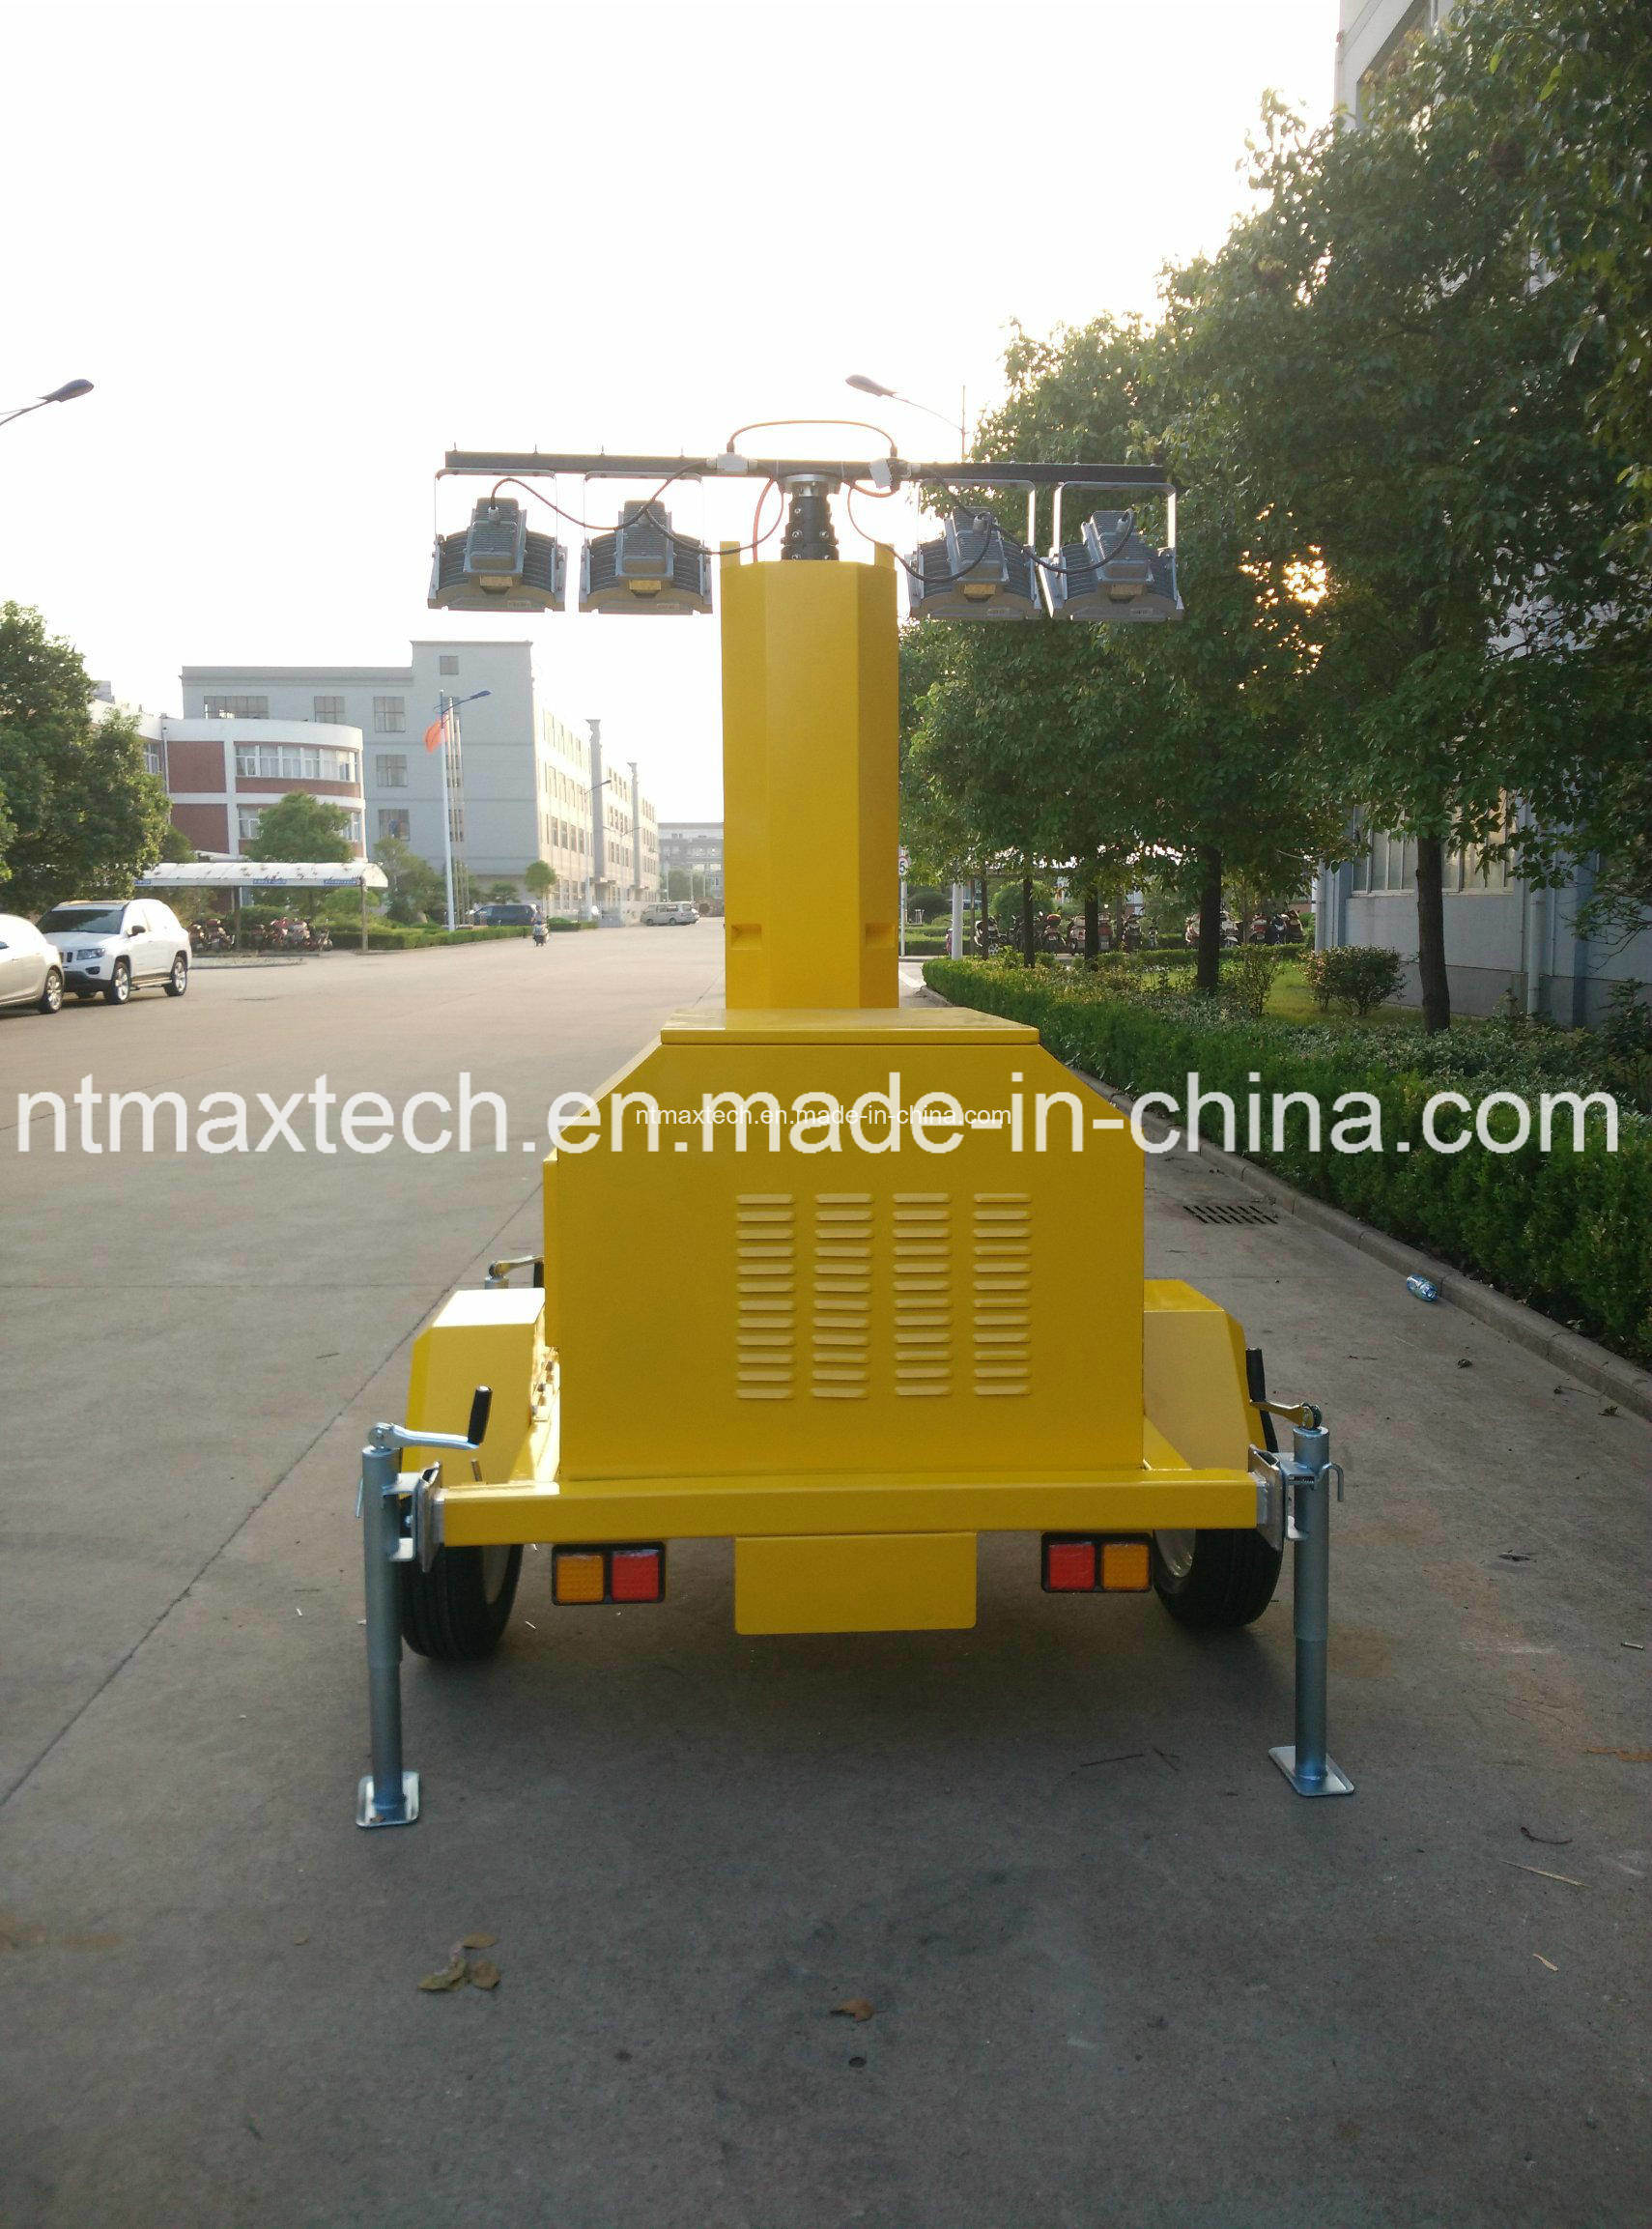 Generator Powered Portable LED Light Tower for Traffic Road Construction Field Working Site